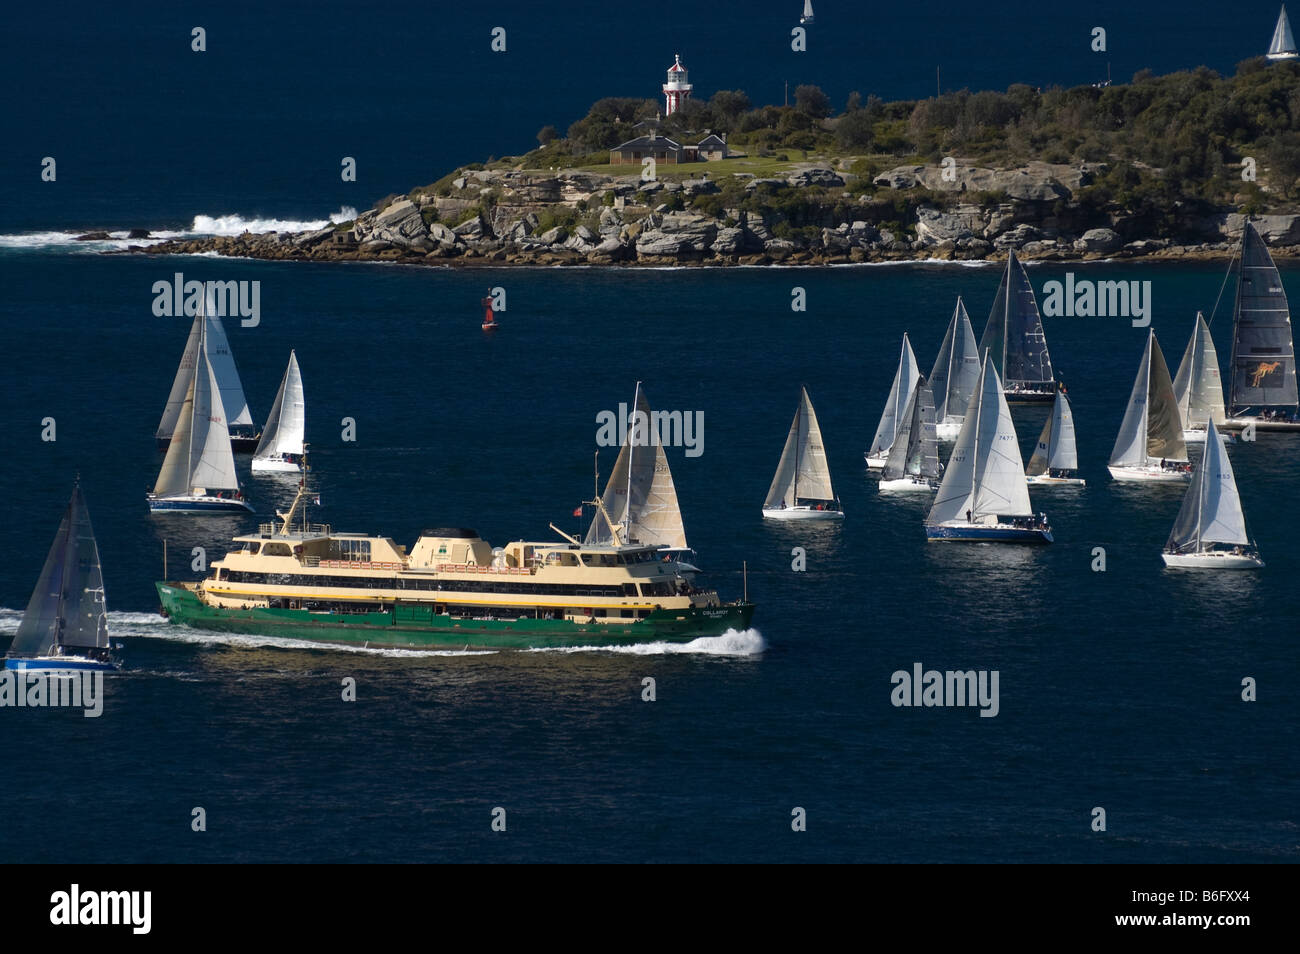 Yachts and Manly Ferry on Sydney Harbour. South Head is in the background. - Stock Image